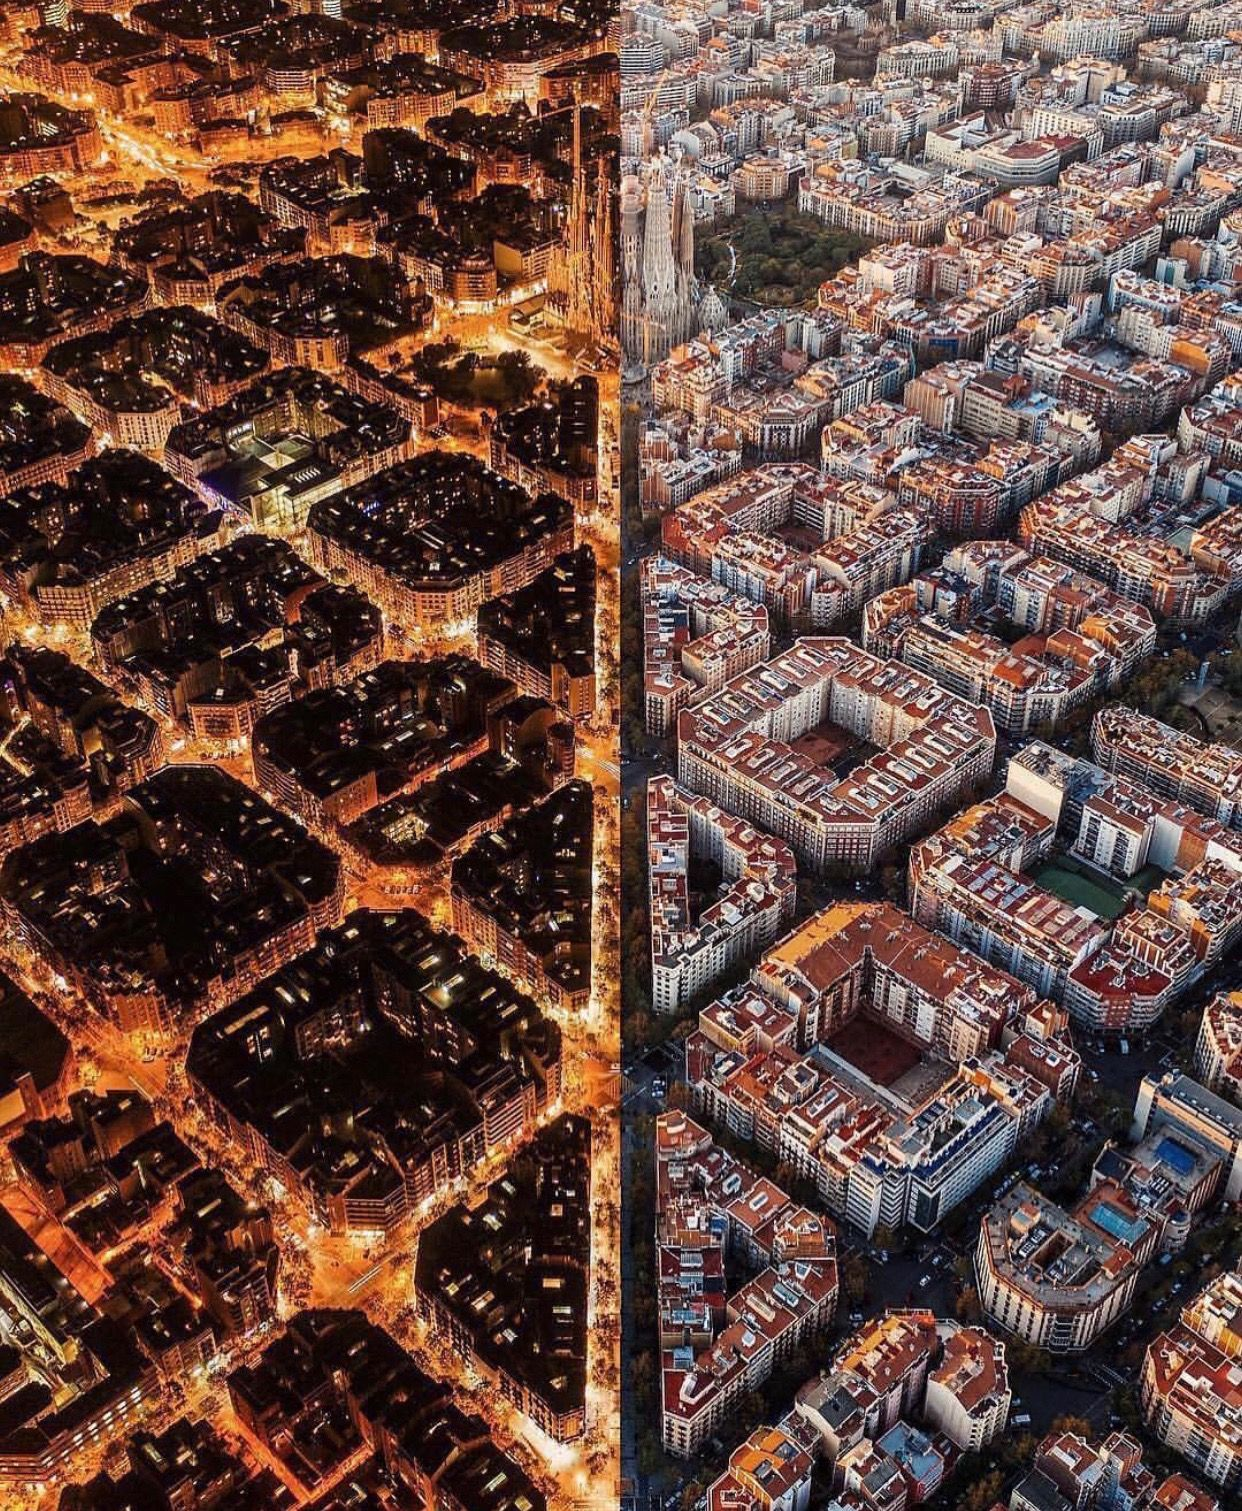 Pin By Lef On Travel With Images Day For Night City Barcelona